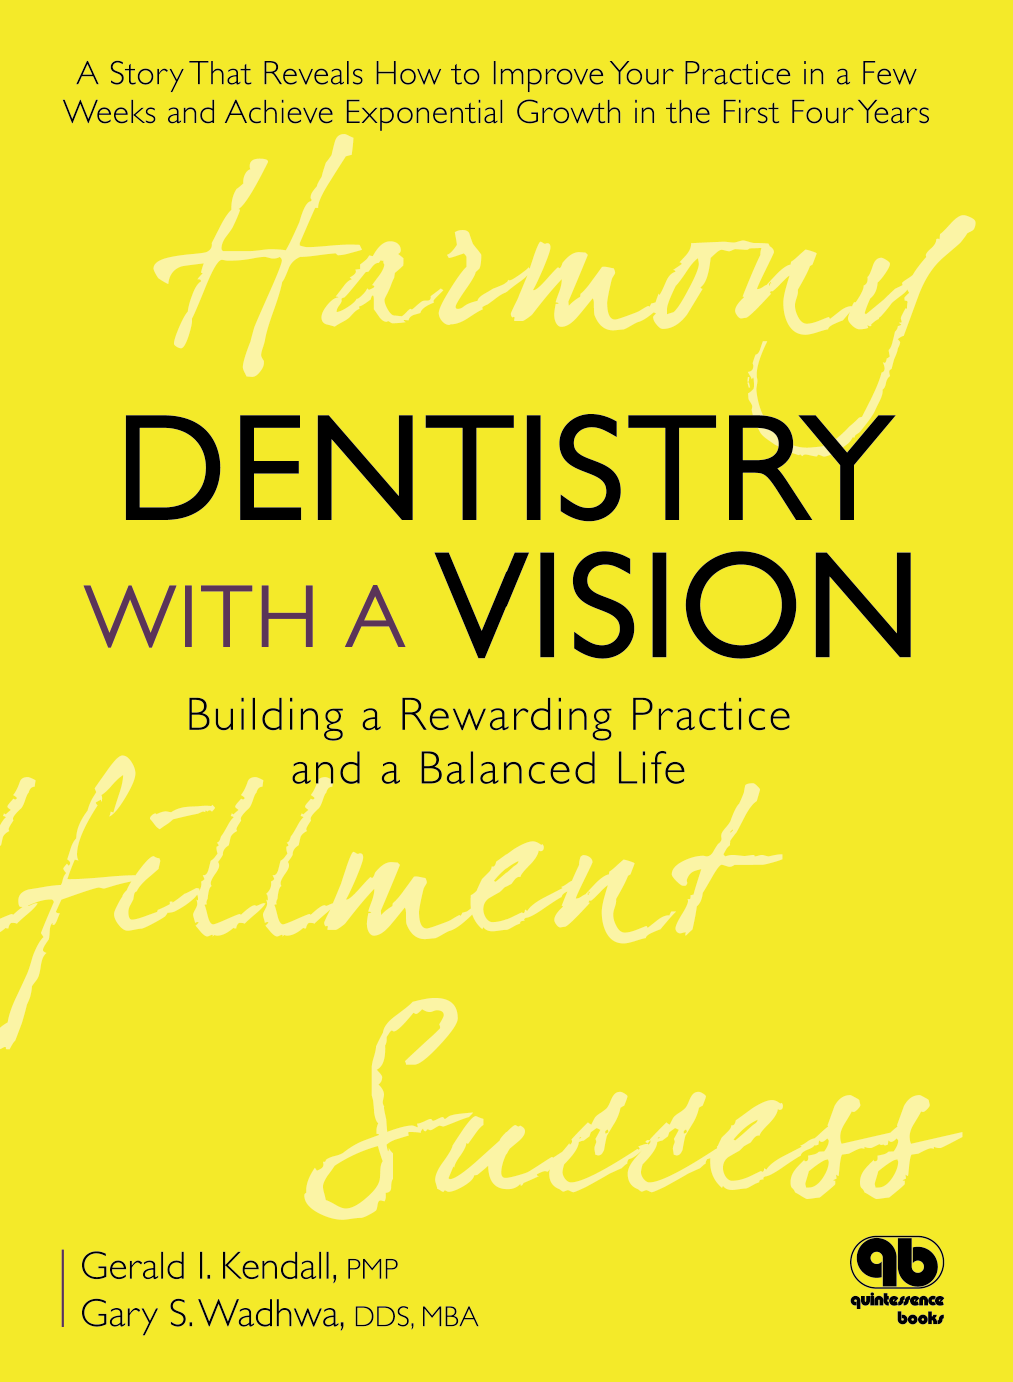 Dentistry with a Vision. Bulding a rewarding practice and a blanced life